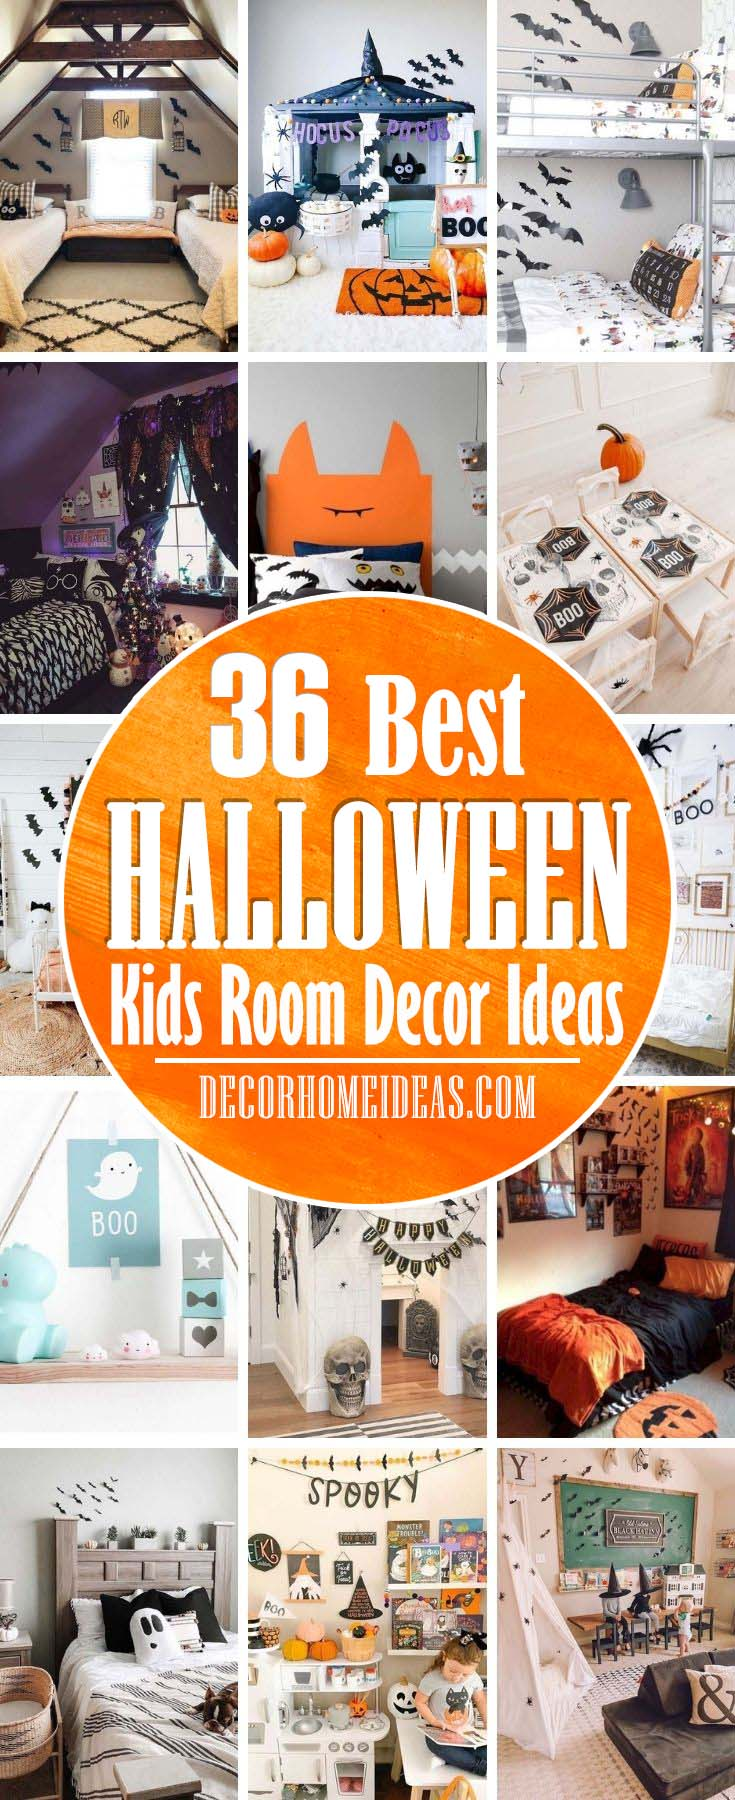 Best Halloween Kids Room Decor Ideas. These DIY Halloween decoration ideas feature the best for your kid's room, including witches, ghosts, and mummies, and will impress trick-or-treaters and party guests alike. #decorhomeideas